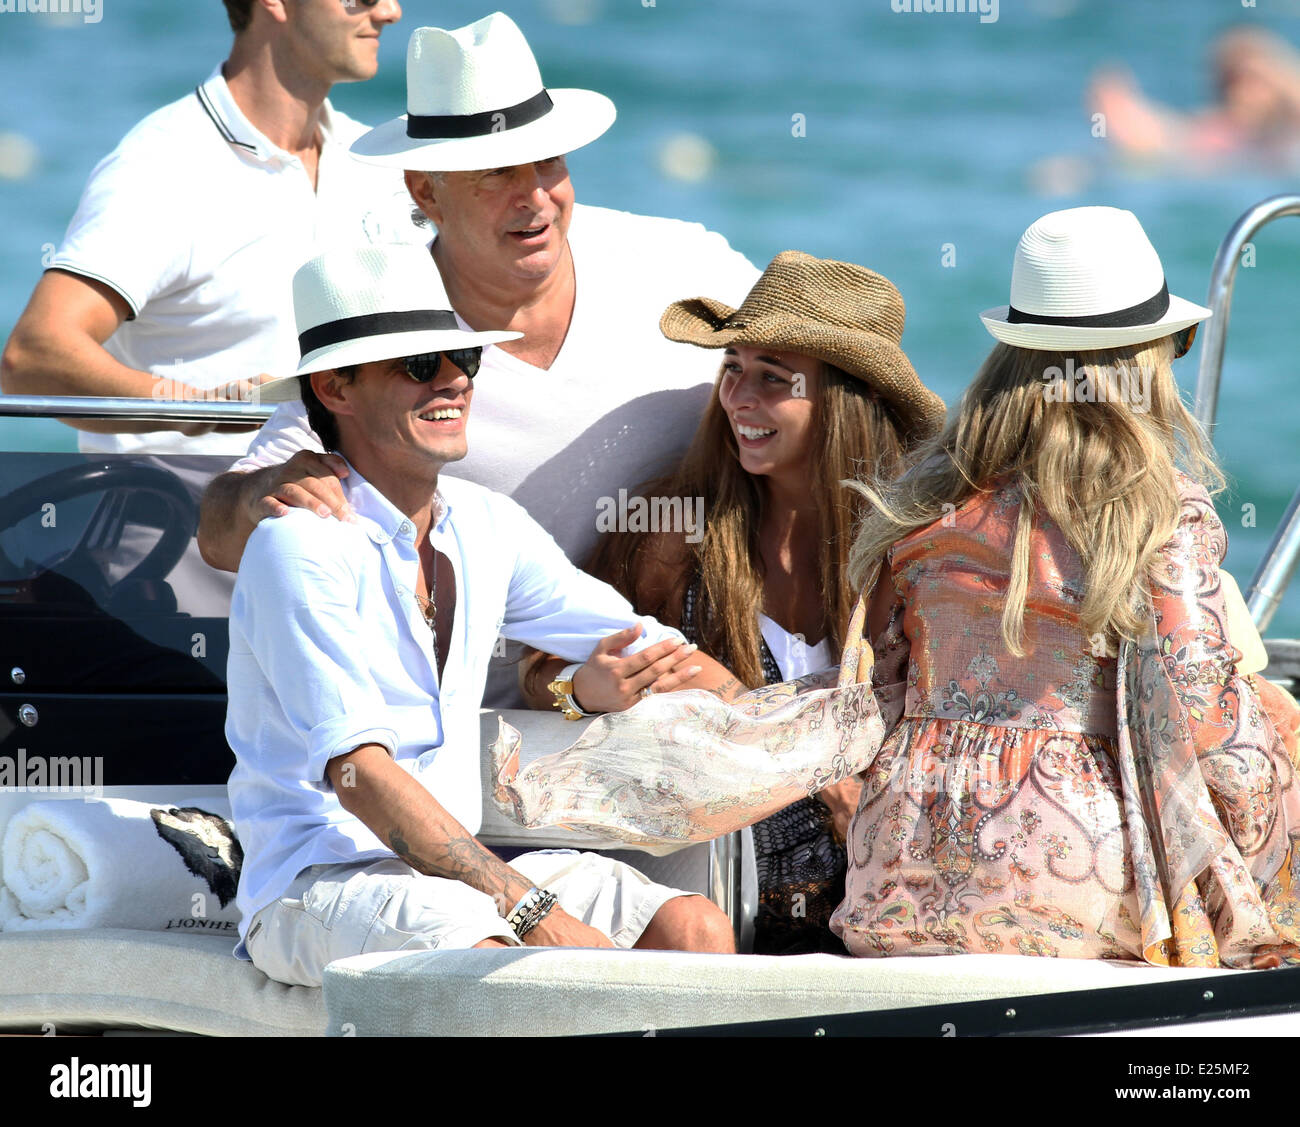 Celebrities at club 55 in st tropez featuring chloe green marc stock photo royalty free image - Club 55 st tropez ...